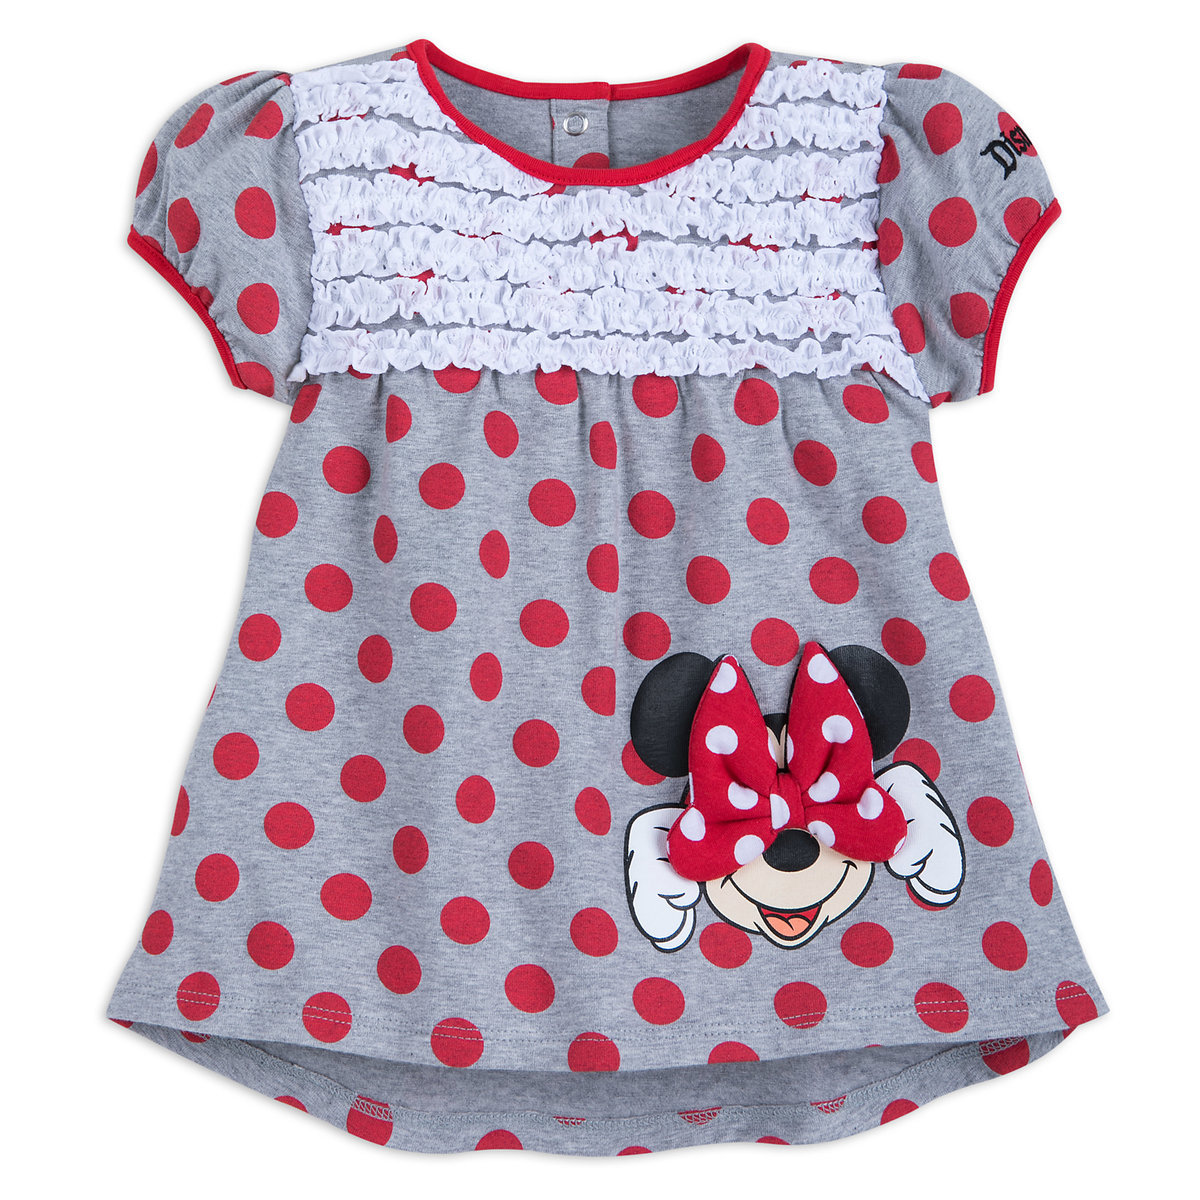 5b0c6f884c646 Minnie Mouse Red Dot Top and Leggings Set for Girls - Disneyland ...